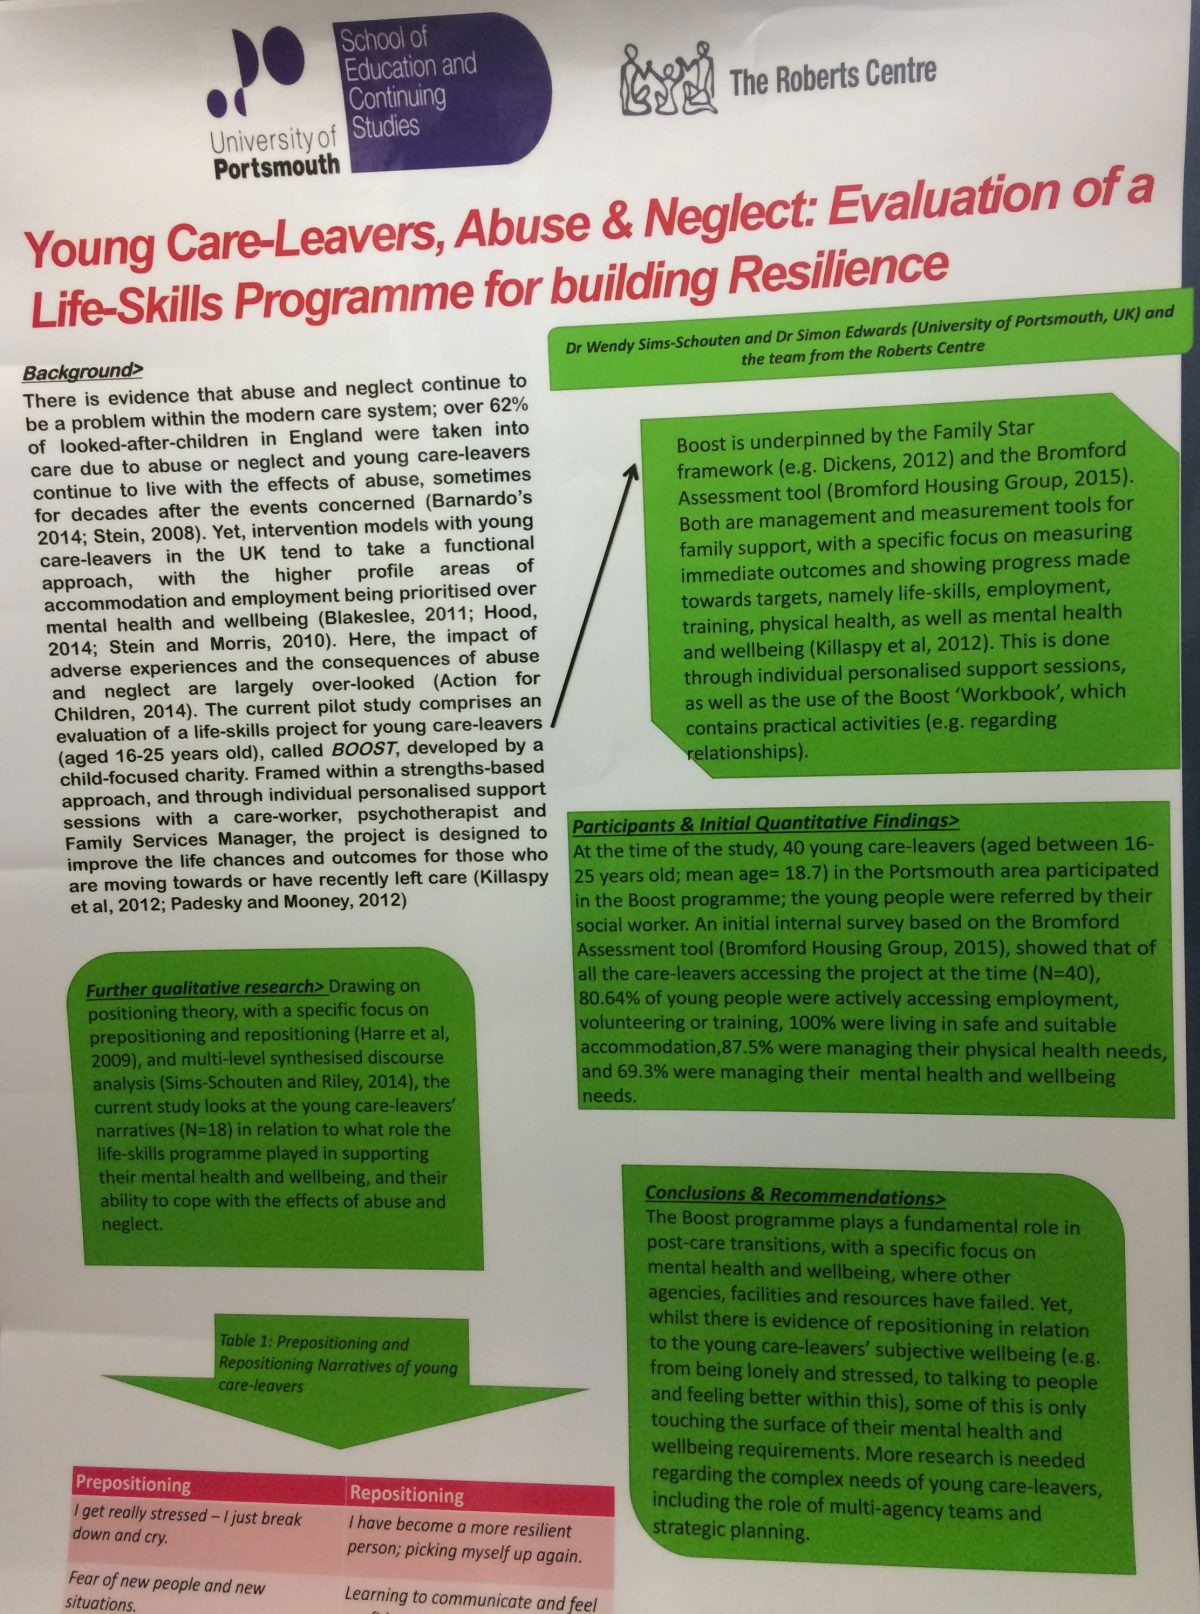 Evaluation of a Life-Skills Project for Young Care-Leavers